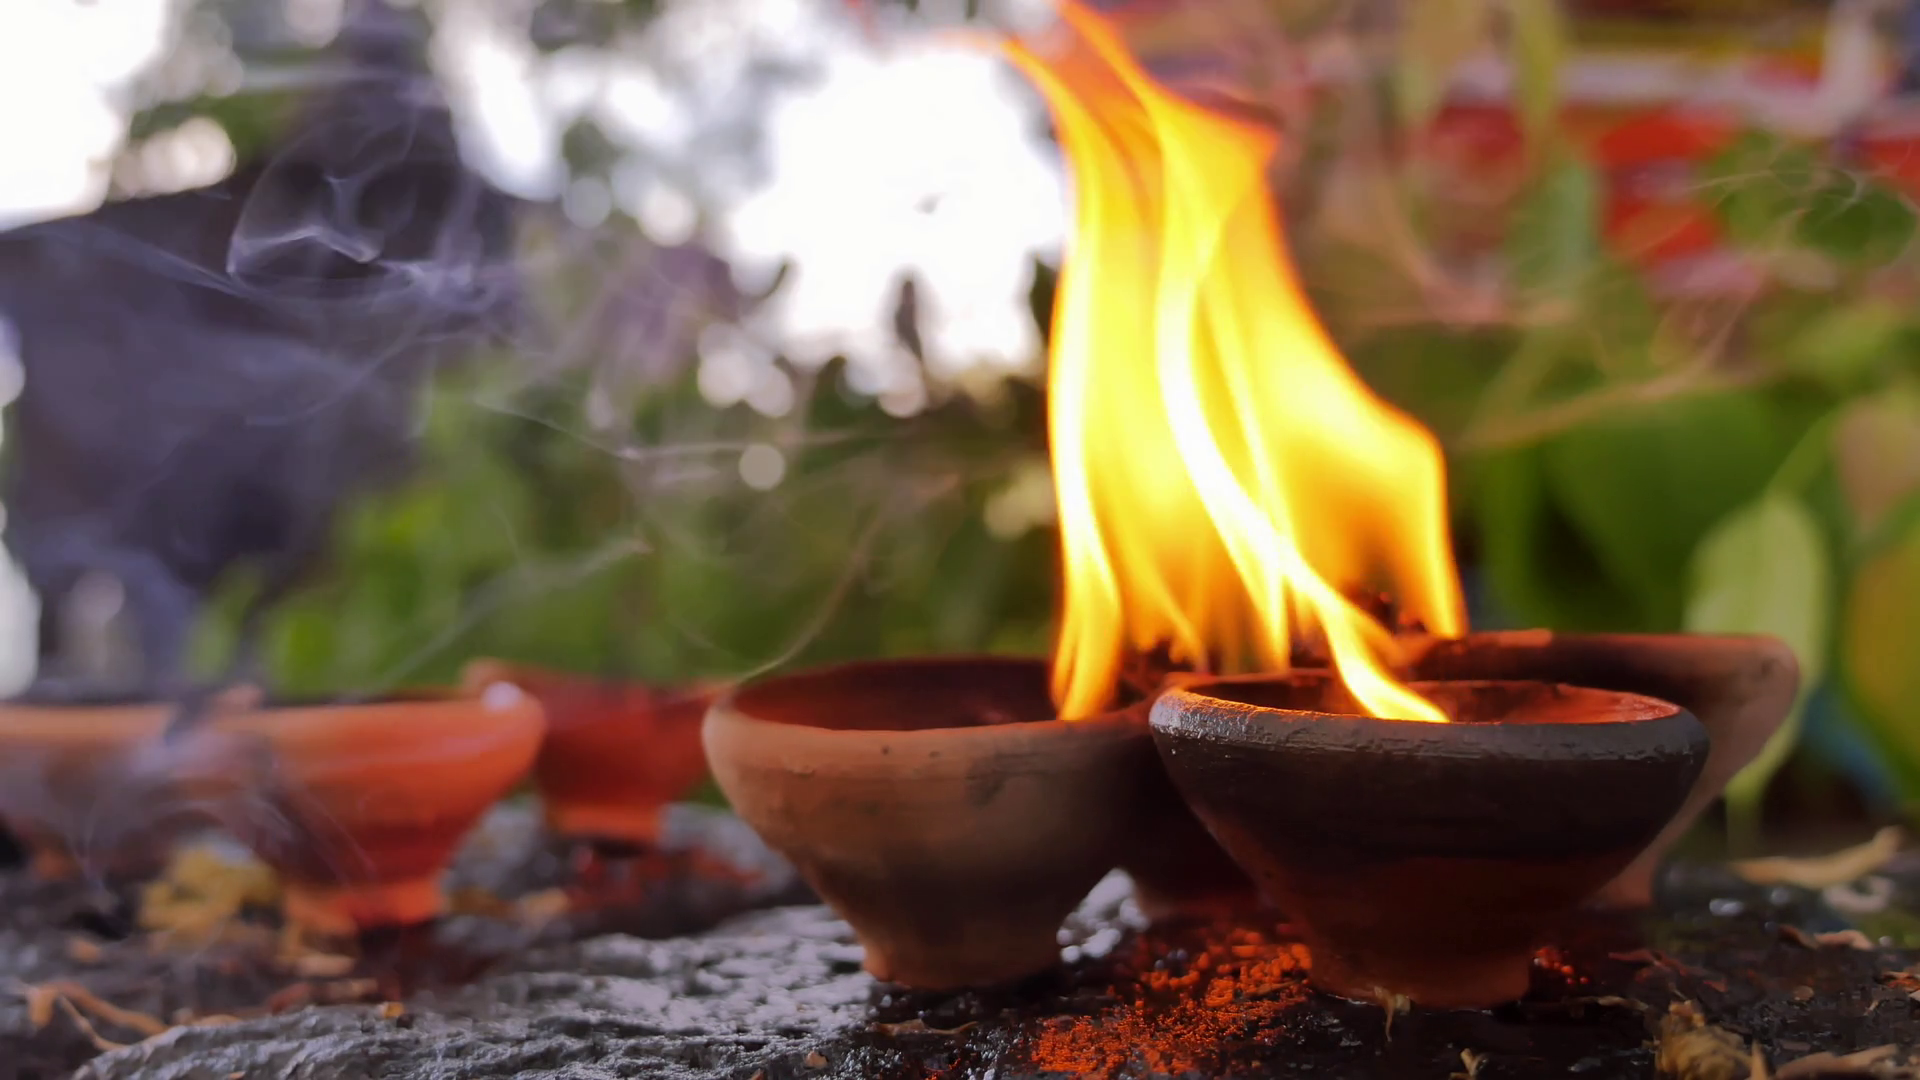 videoblocks-spiritual-background-of-burning-candles-in-buddhist-temple-flames-and-fumes-of-aromatic-oil-in-south-east-asia_sglbrk5nx_thumbnail-full08.png